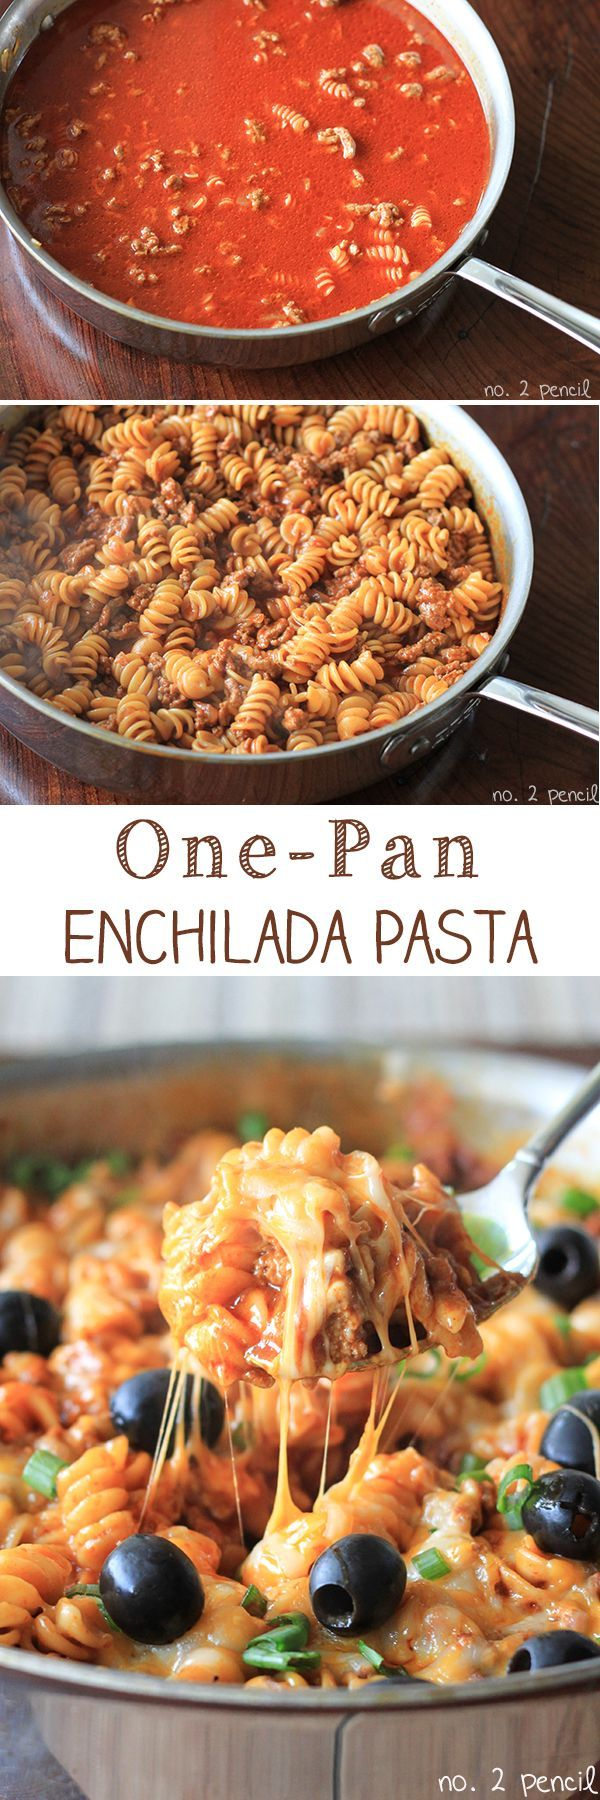 One-Pan Enchilada Pasta Recipe - This looks delicious. When my vegetarian in-laws visit, I would make with vegetable broth and crumbled tofu.